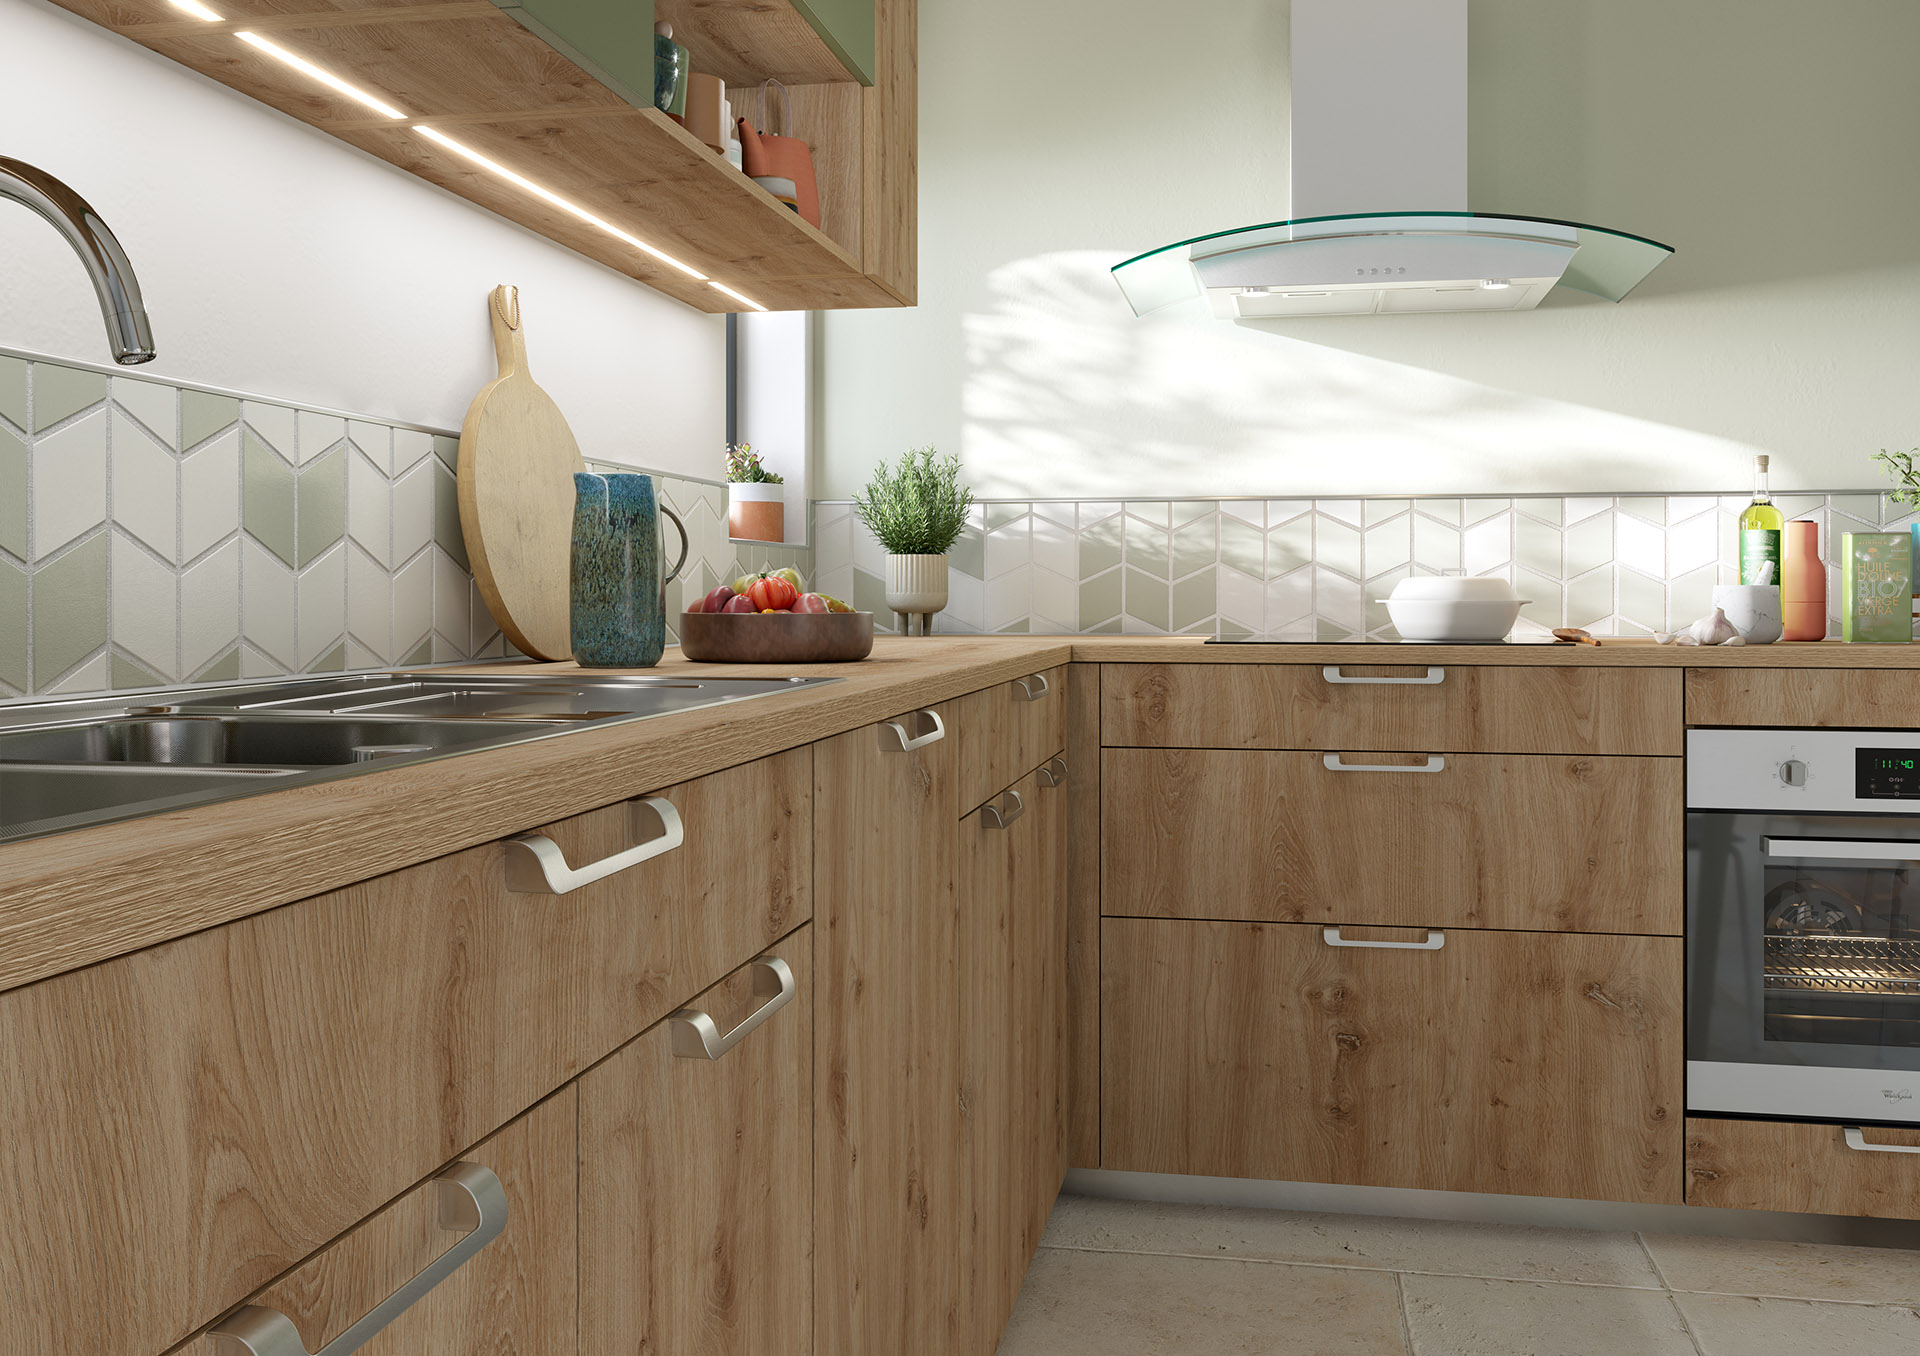 3D representation of the storage space in a kitchen